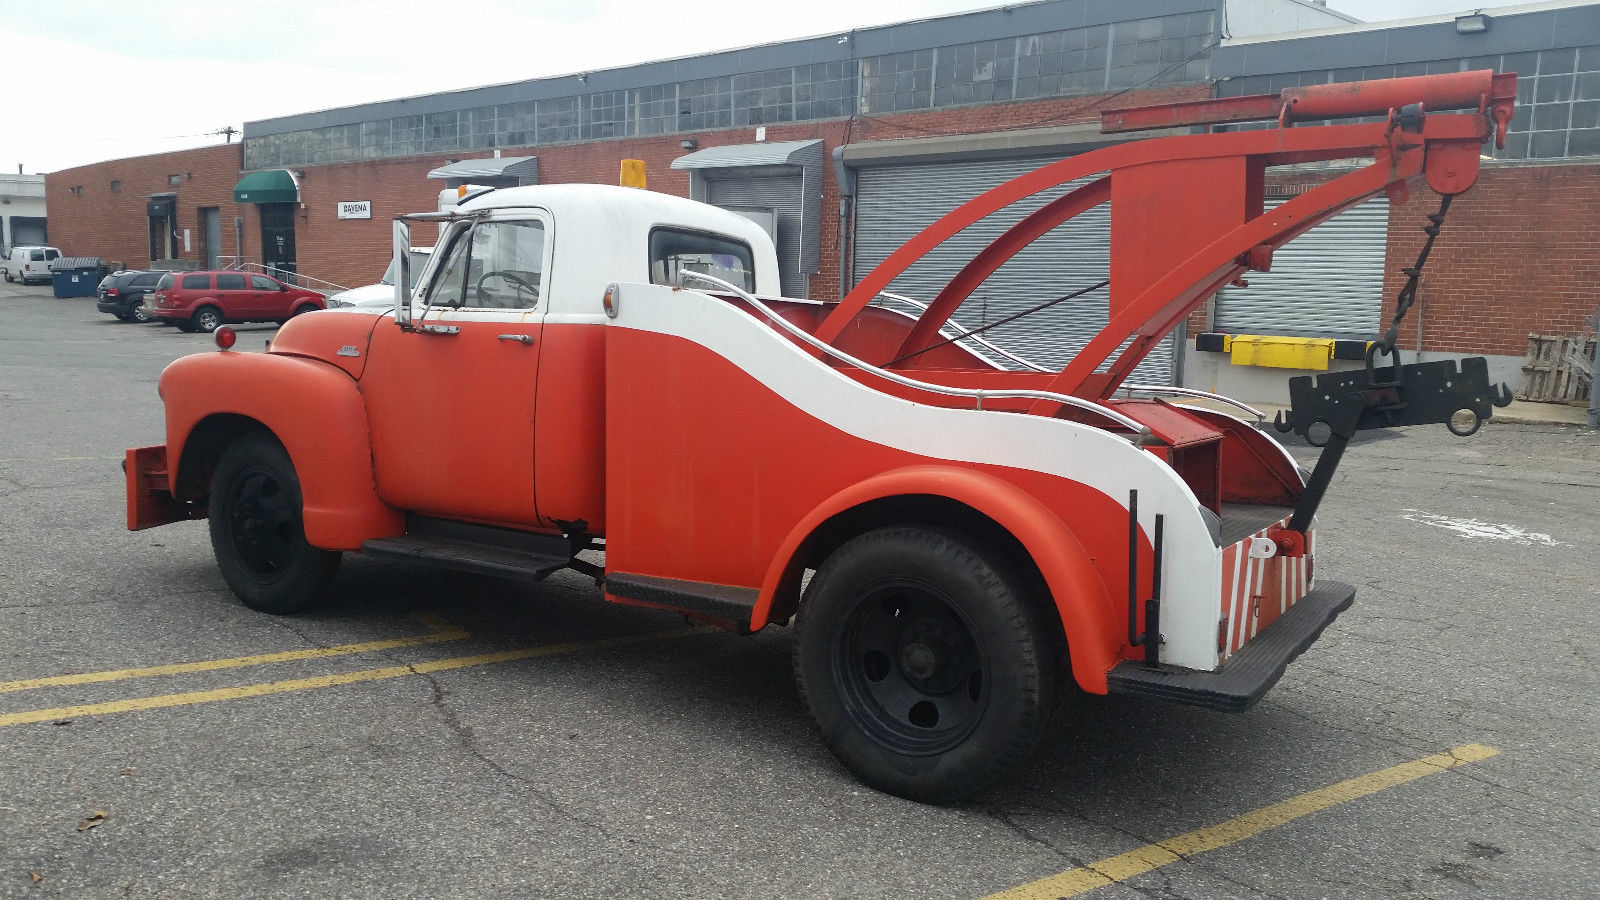 1954 Chevrolet Tow Truck Chariot Back Runs And Drives 4100 Manley Ford Crane Art Deco